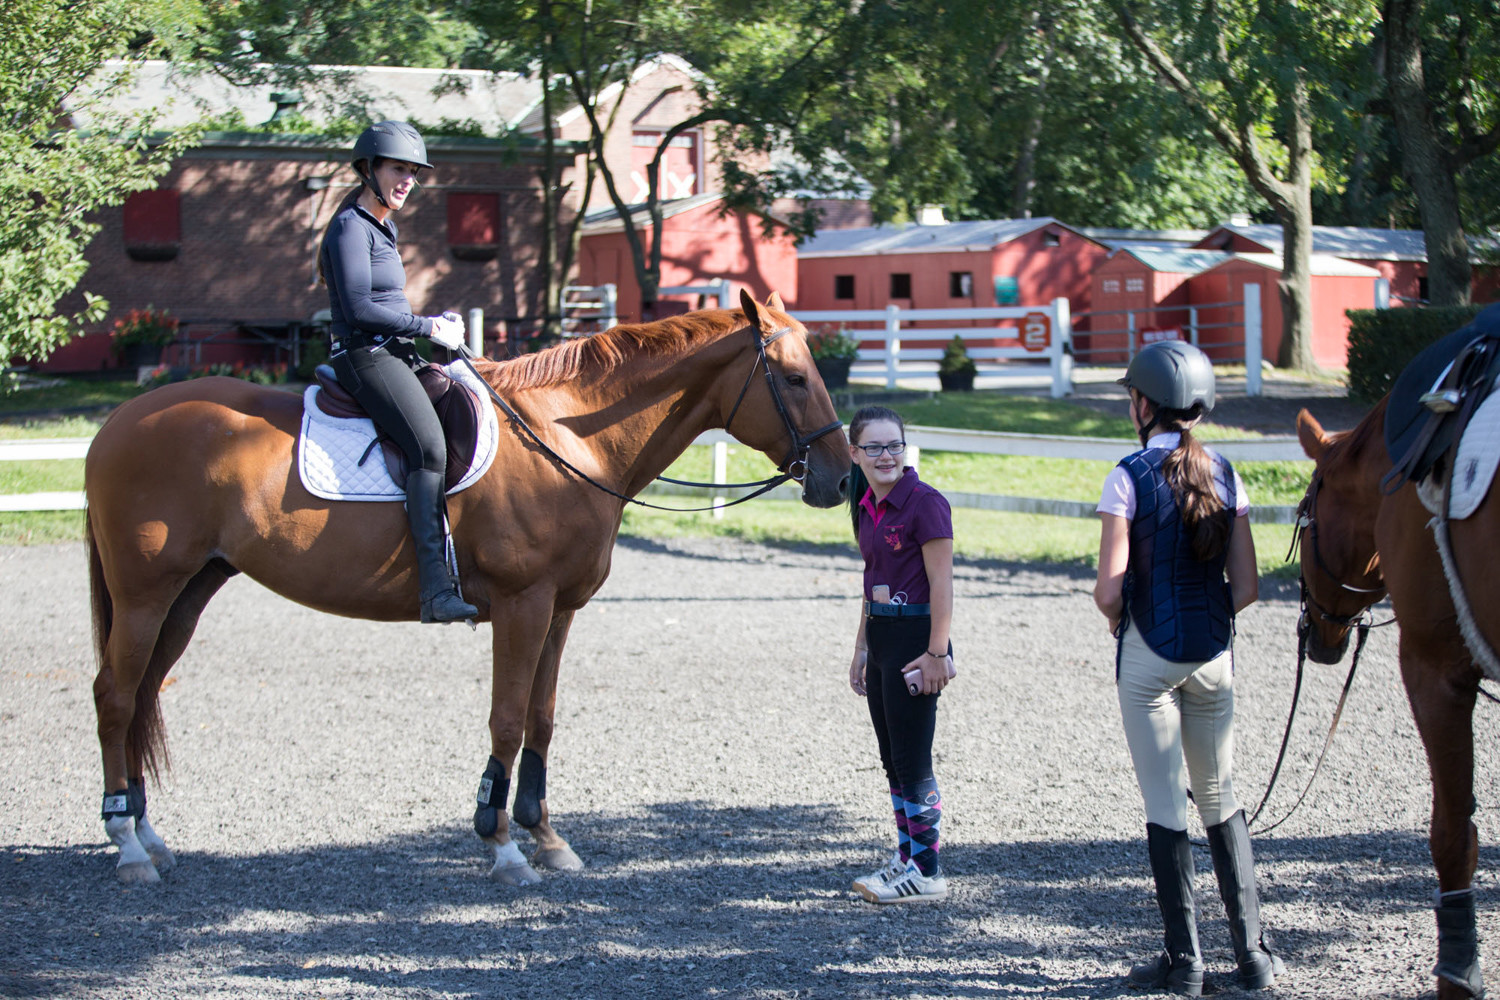 Samantha Goldberg, left, talks with fellow rider Sloane Mayman at the Riverdale Stables. The two are some of the many riders the stable accommodates throughout the year.